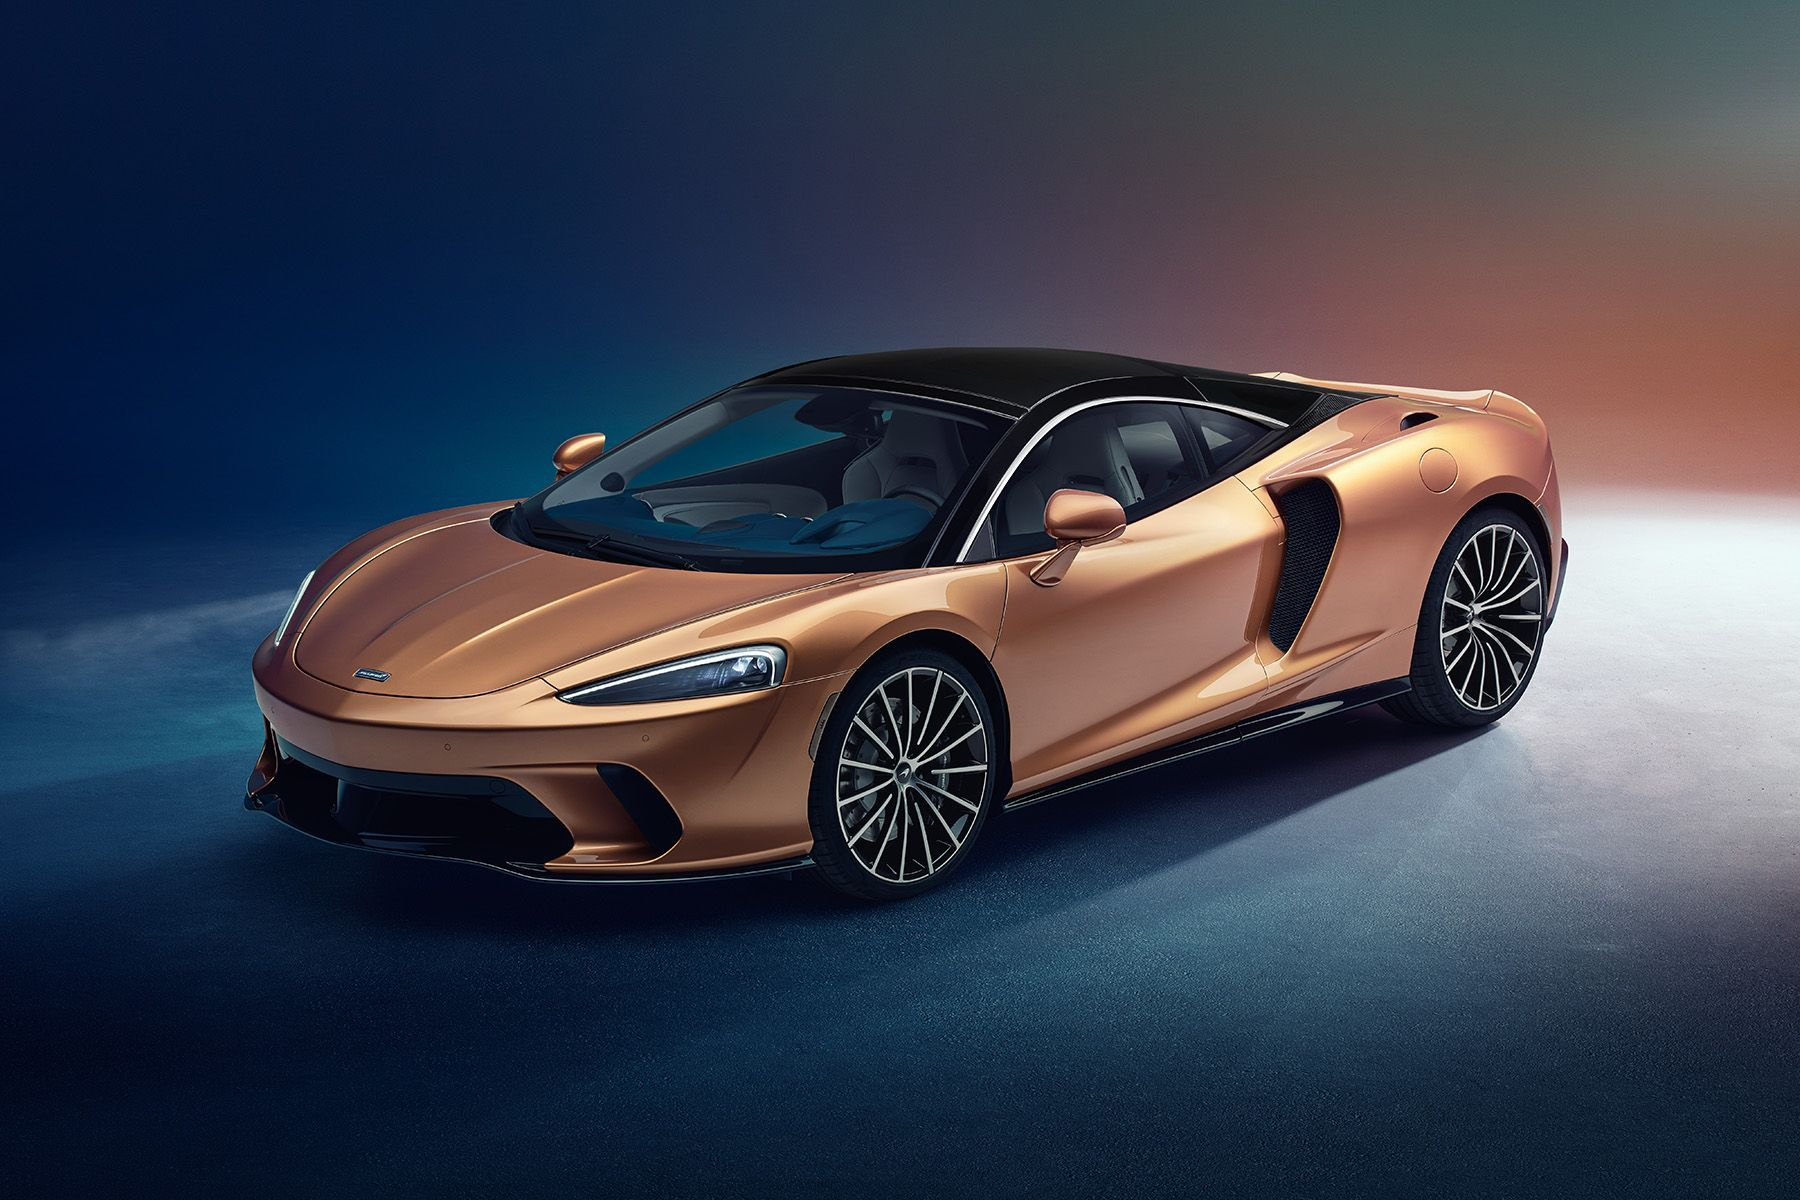 The New Mclaren Gt Is A Luxury Supercar For Cross Country Trips New Mclaren Super Cars Mclaren Cars